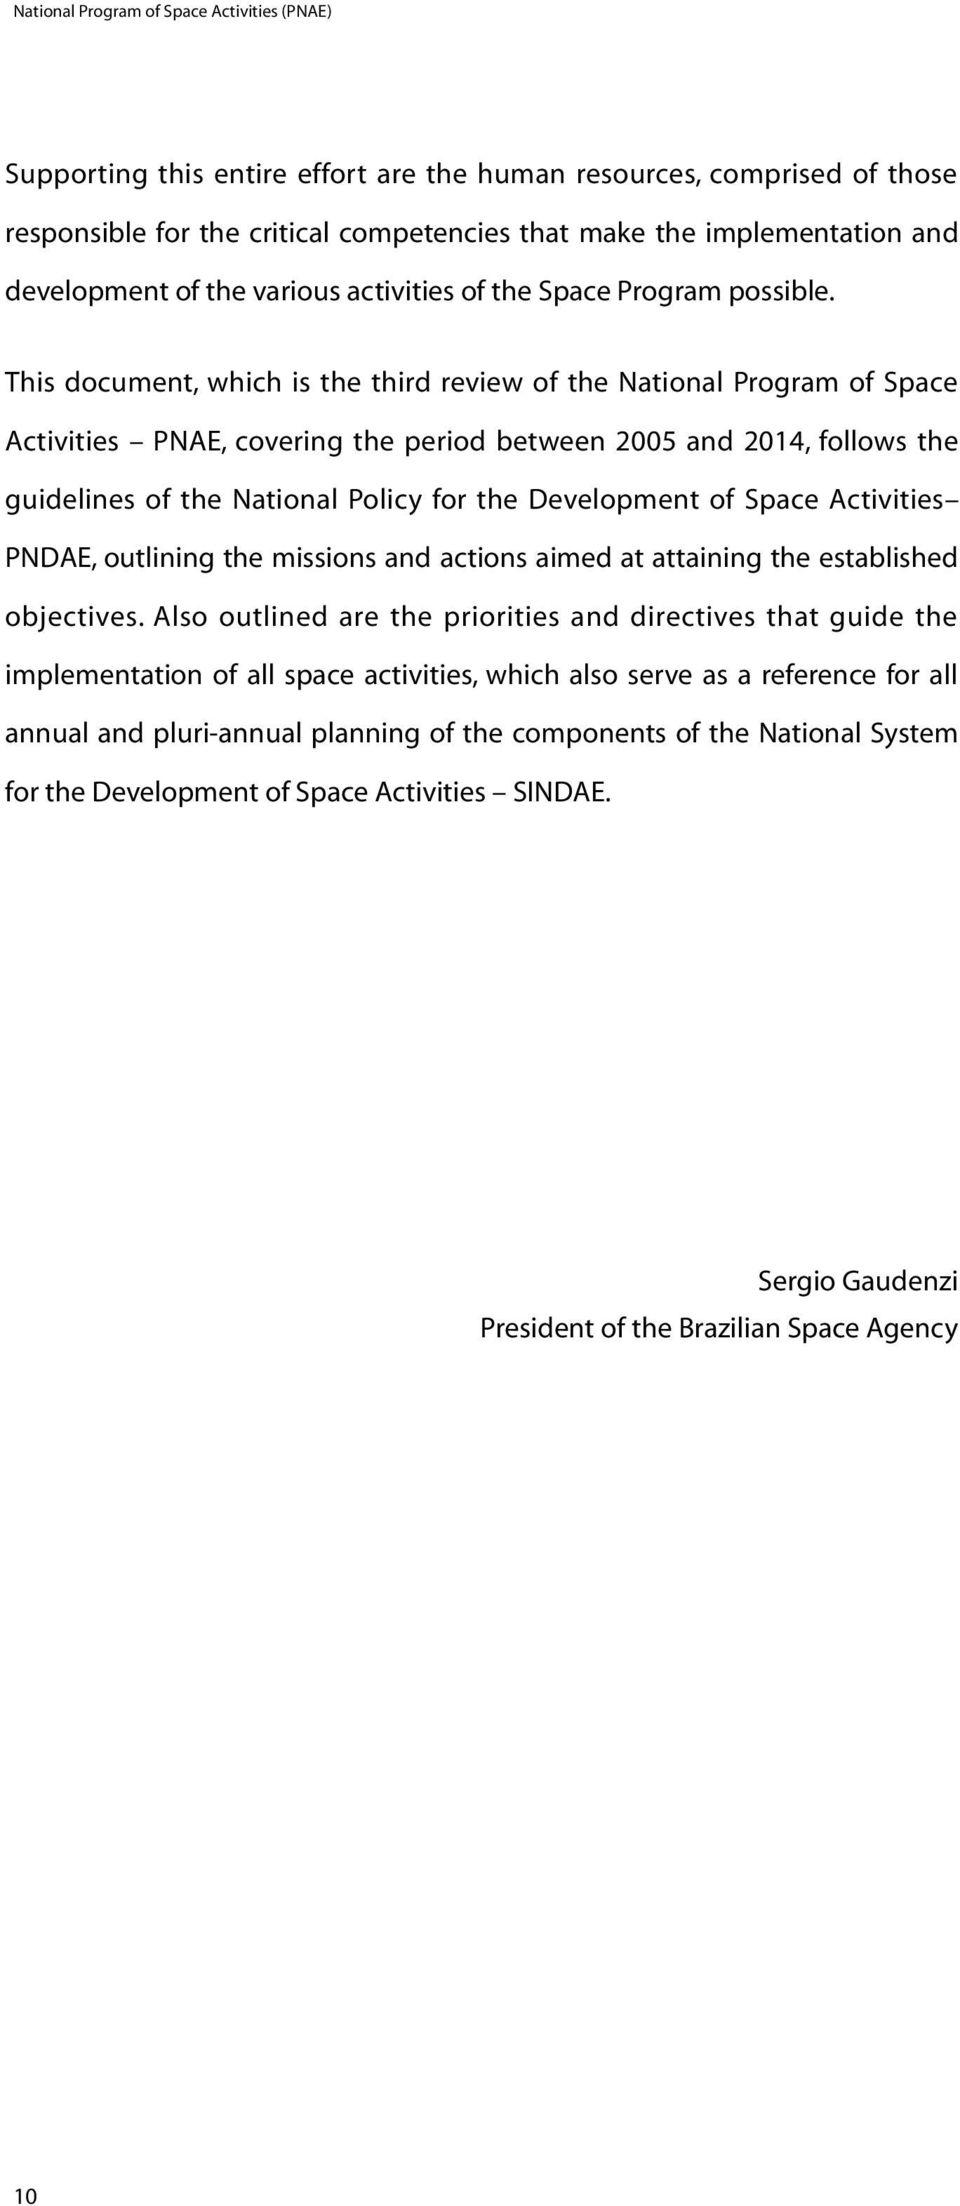 This document, which is the third review of the National Program of Space Activities PNAE, covering the period between 2005 and 2014, follows the guidelines of the National Policy for the Development